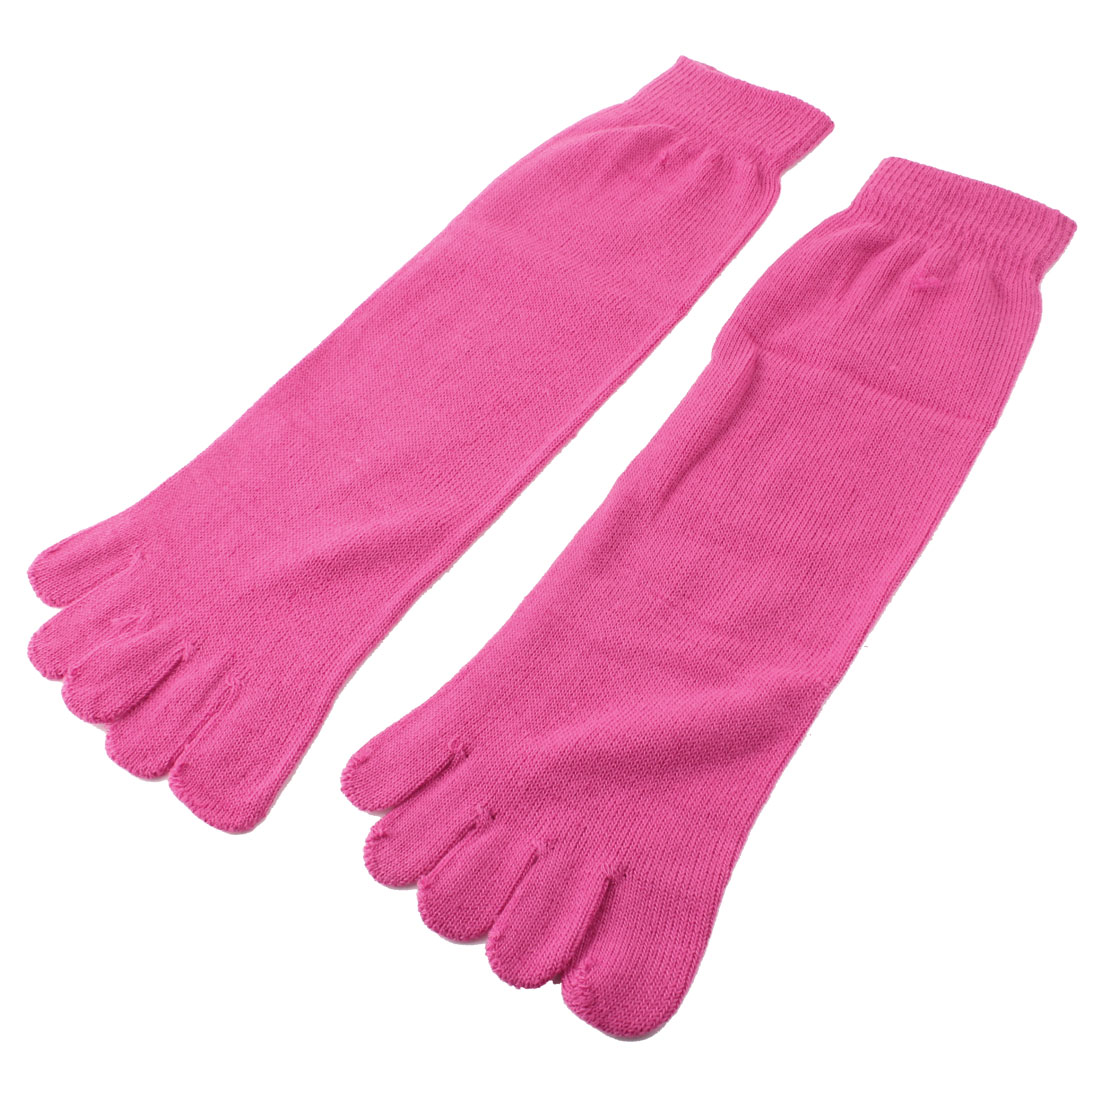 Unisex Outdoor Ankle High Length Five Fingers Feet Toe Socks Magenta Pair